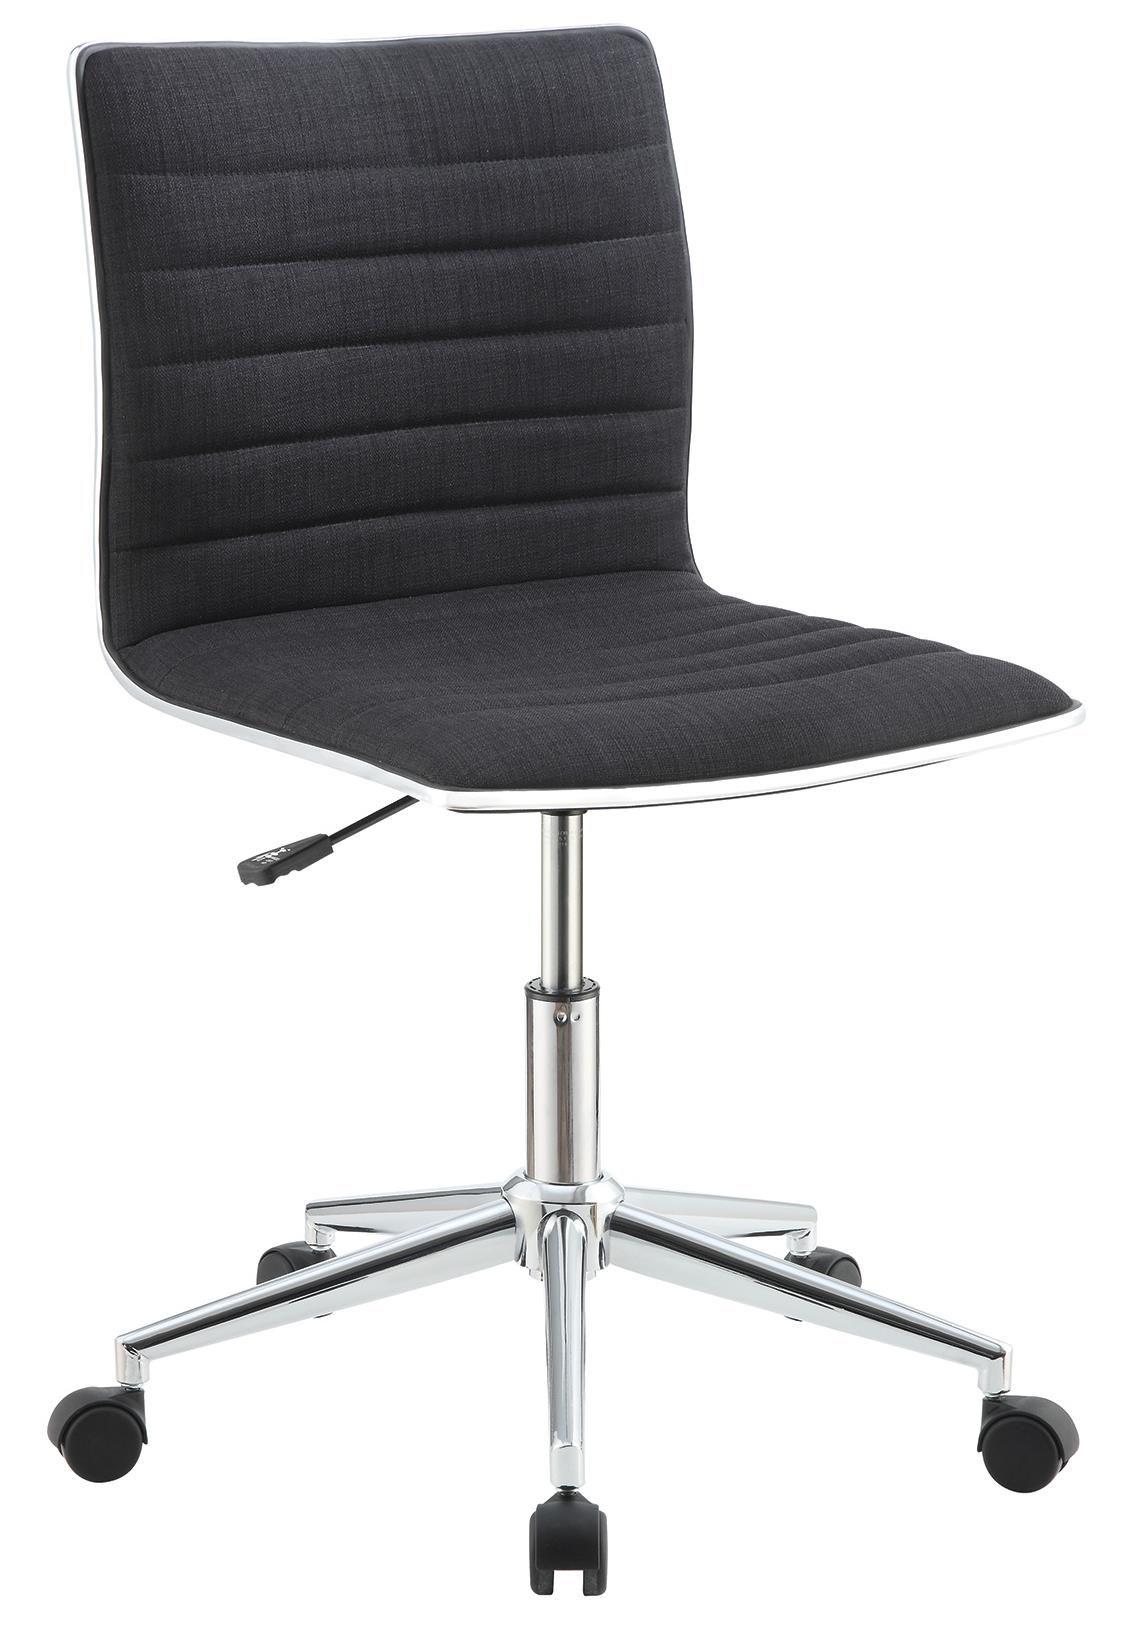 Coaster Office Chairs Office Chair - Item Number: 800725